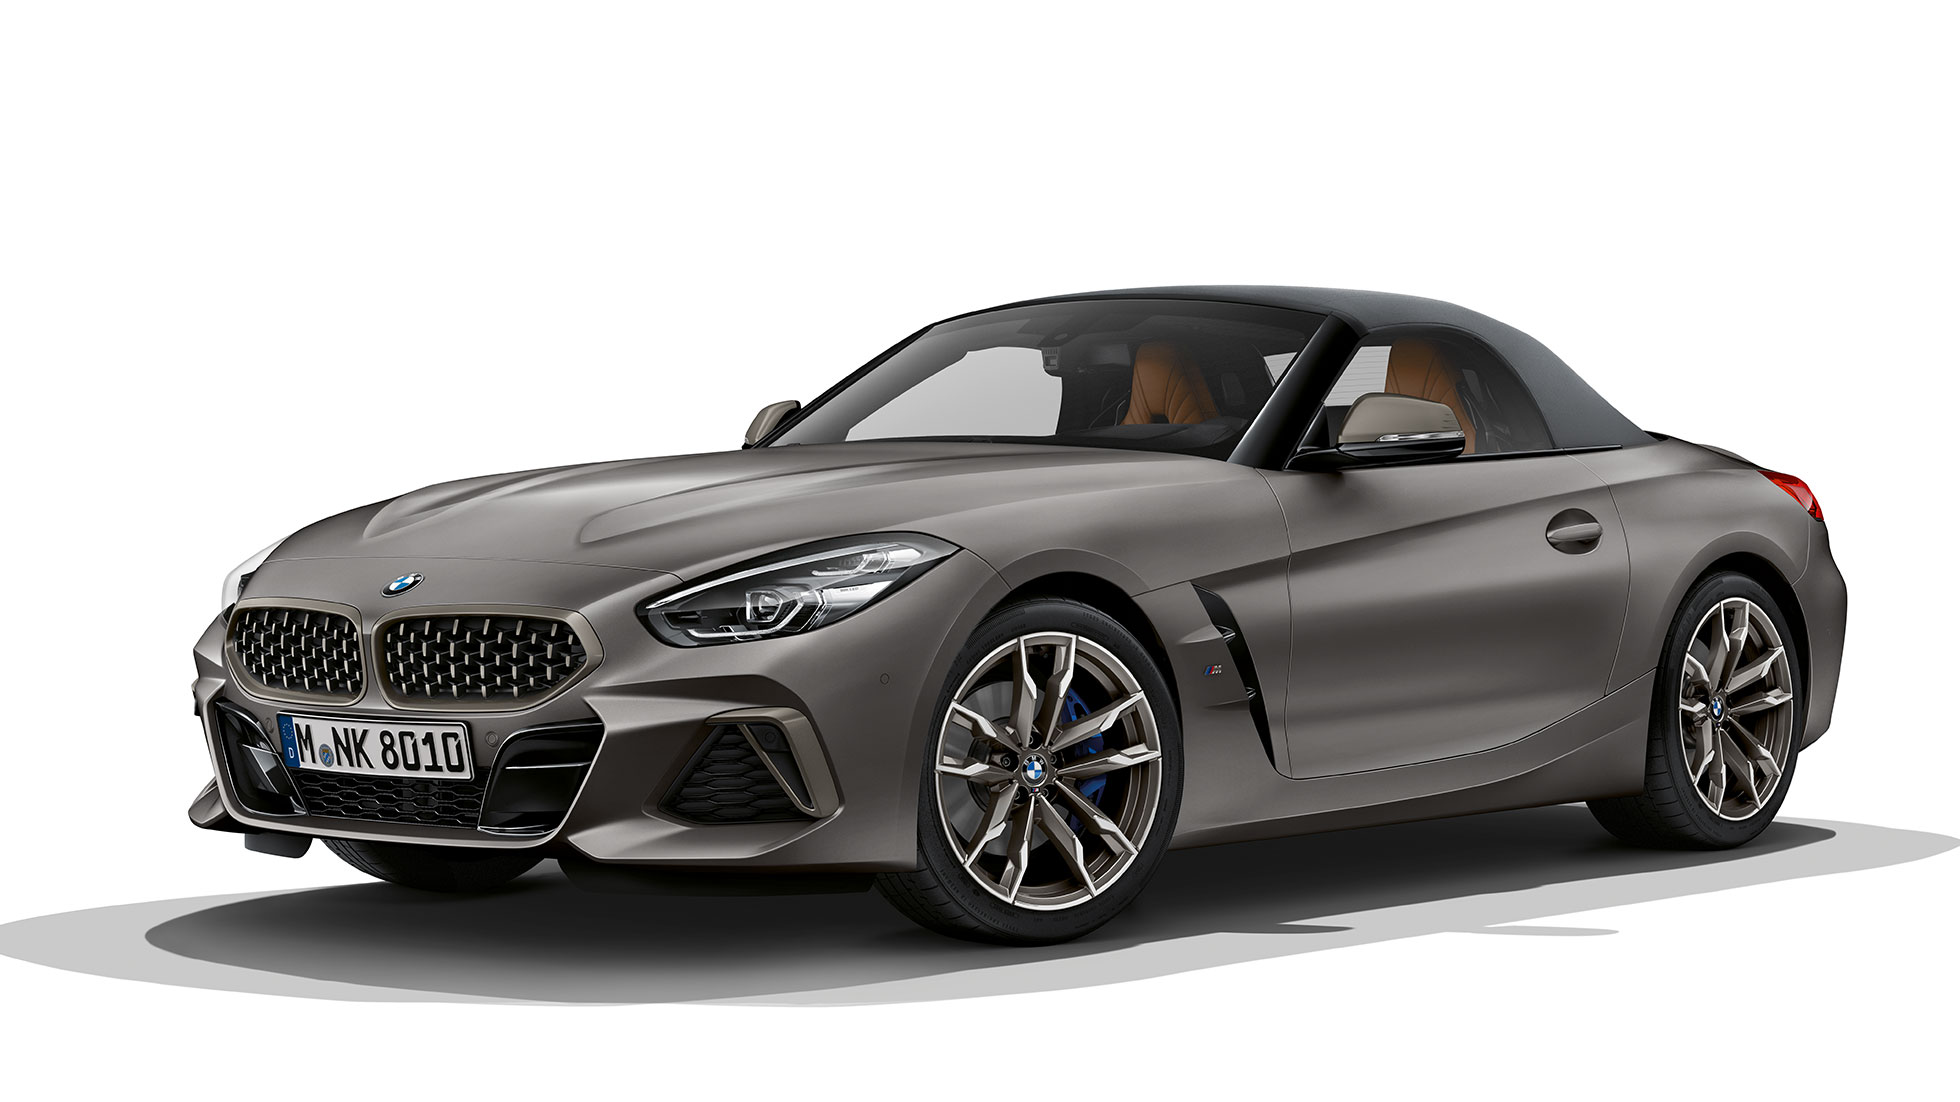 BMW Z4 Roadster M40i, vista frontal a 45 graus